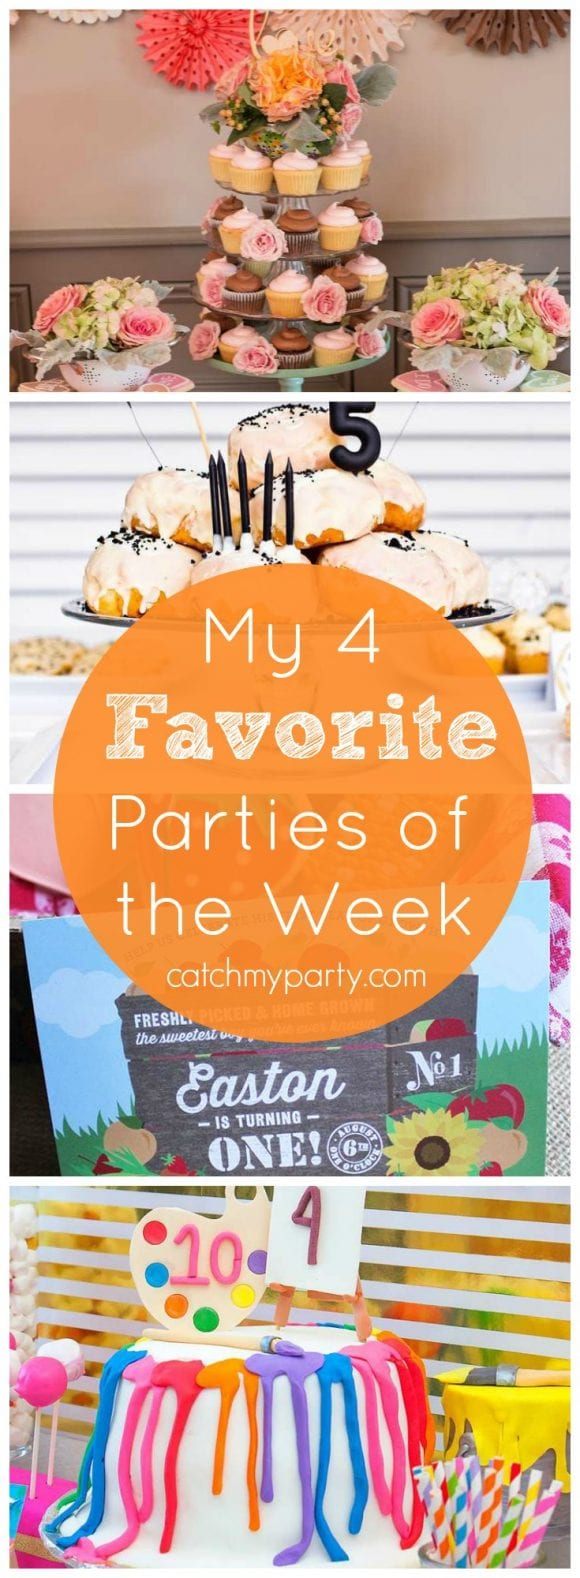 My favorite parties are a kitchen bridal shower, a donut party, a farmer's market party and a neon art party | Catchmyparty.com